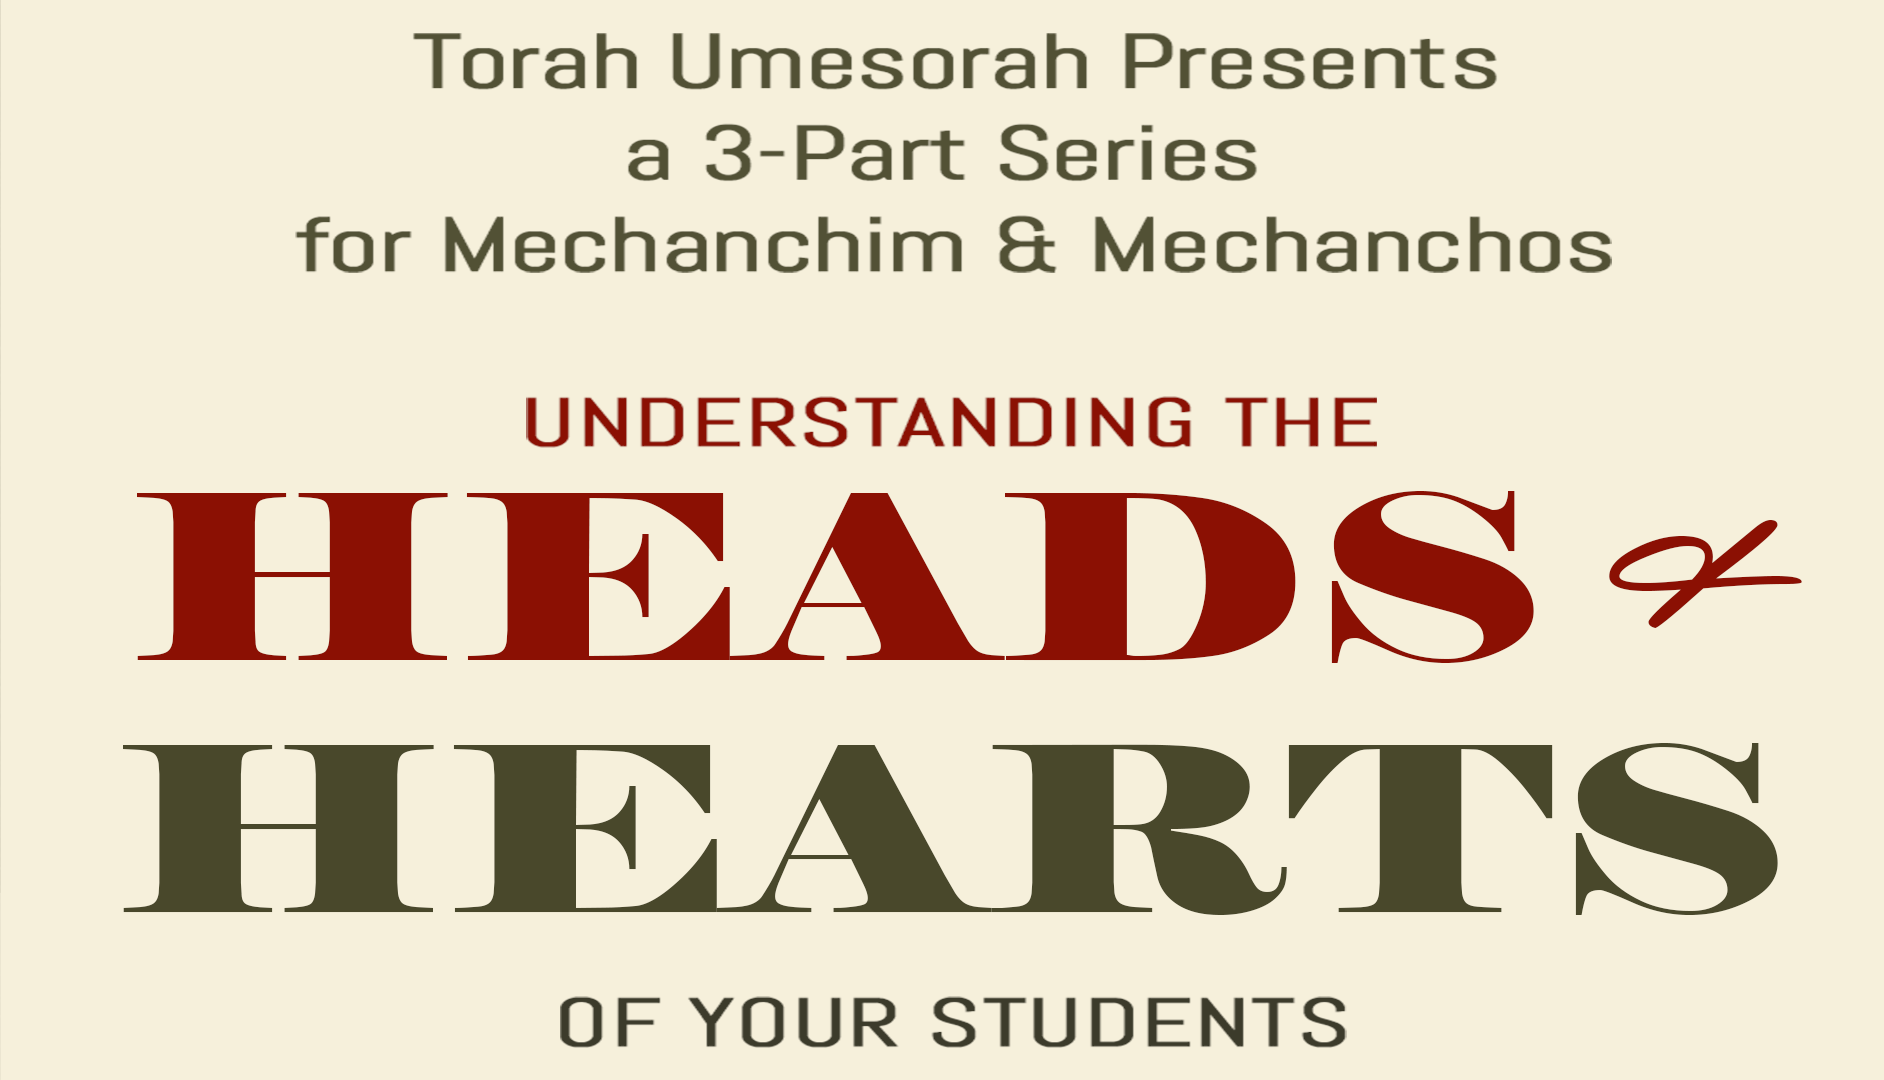 Understanding the Heads & Hearts of Your Students